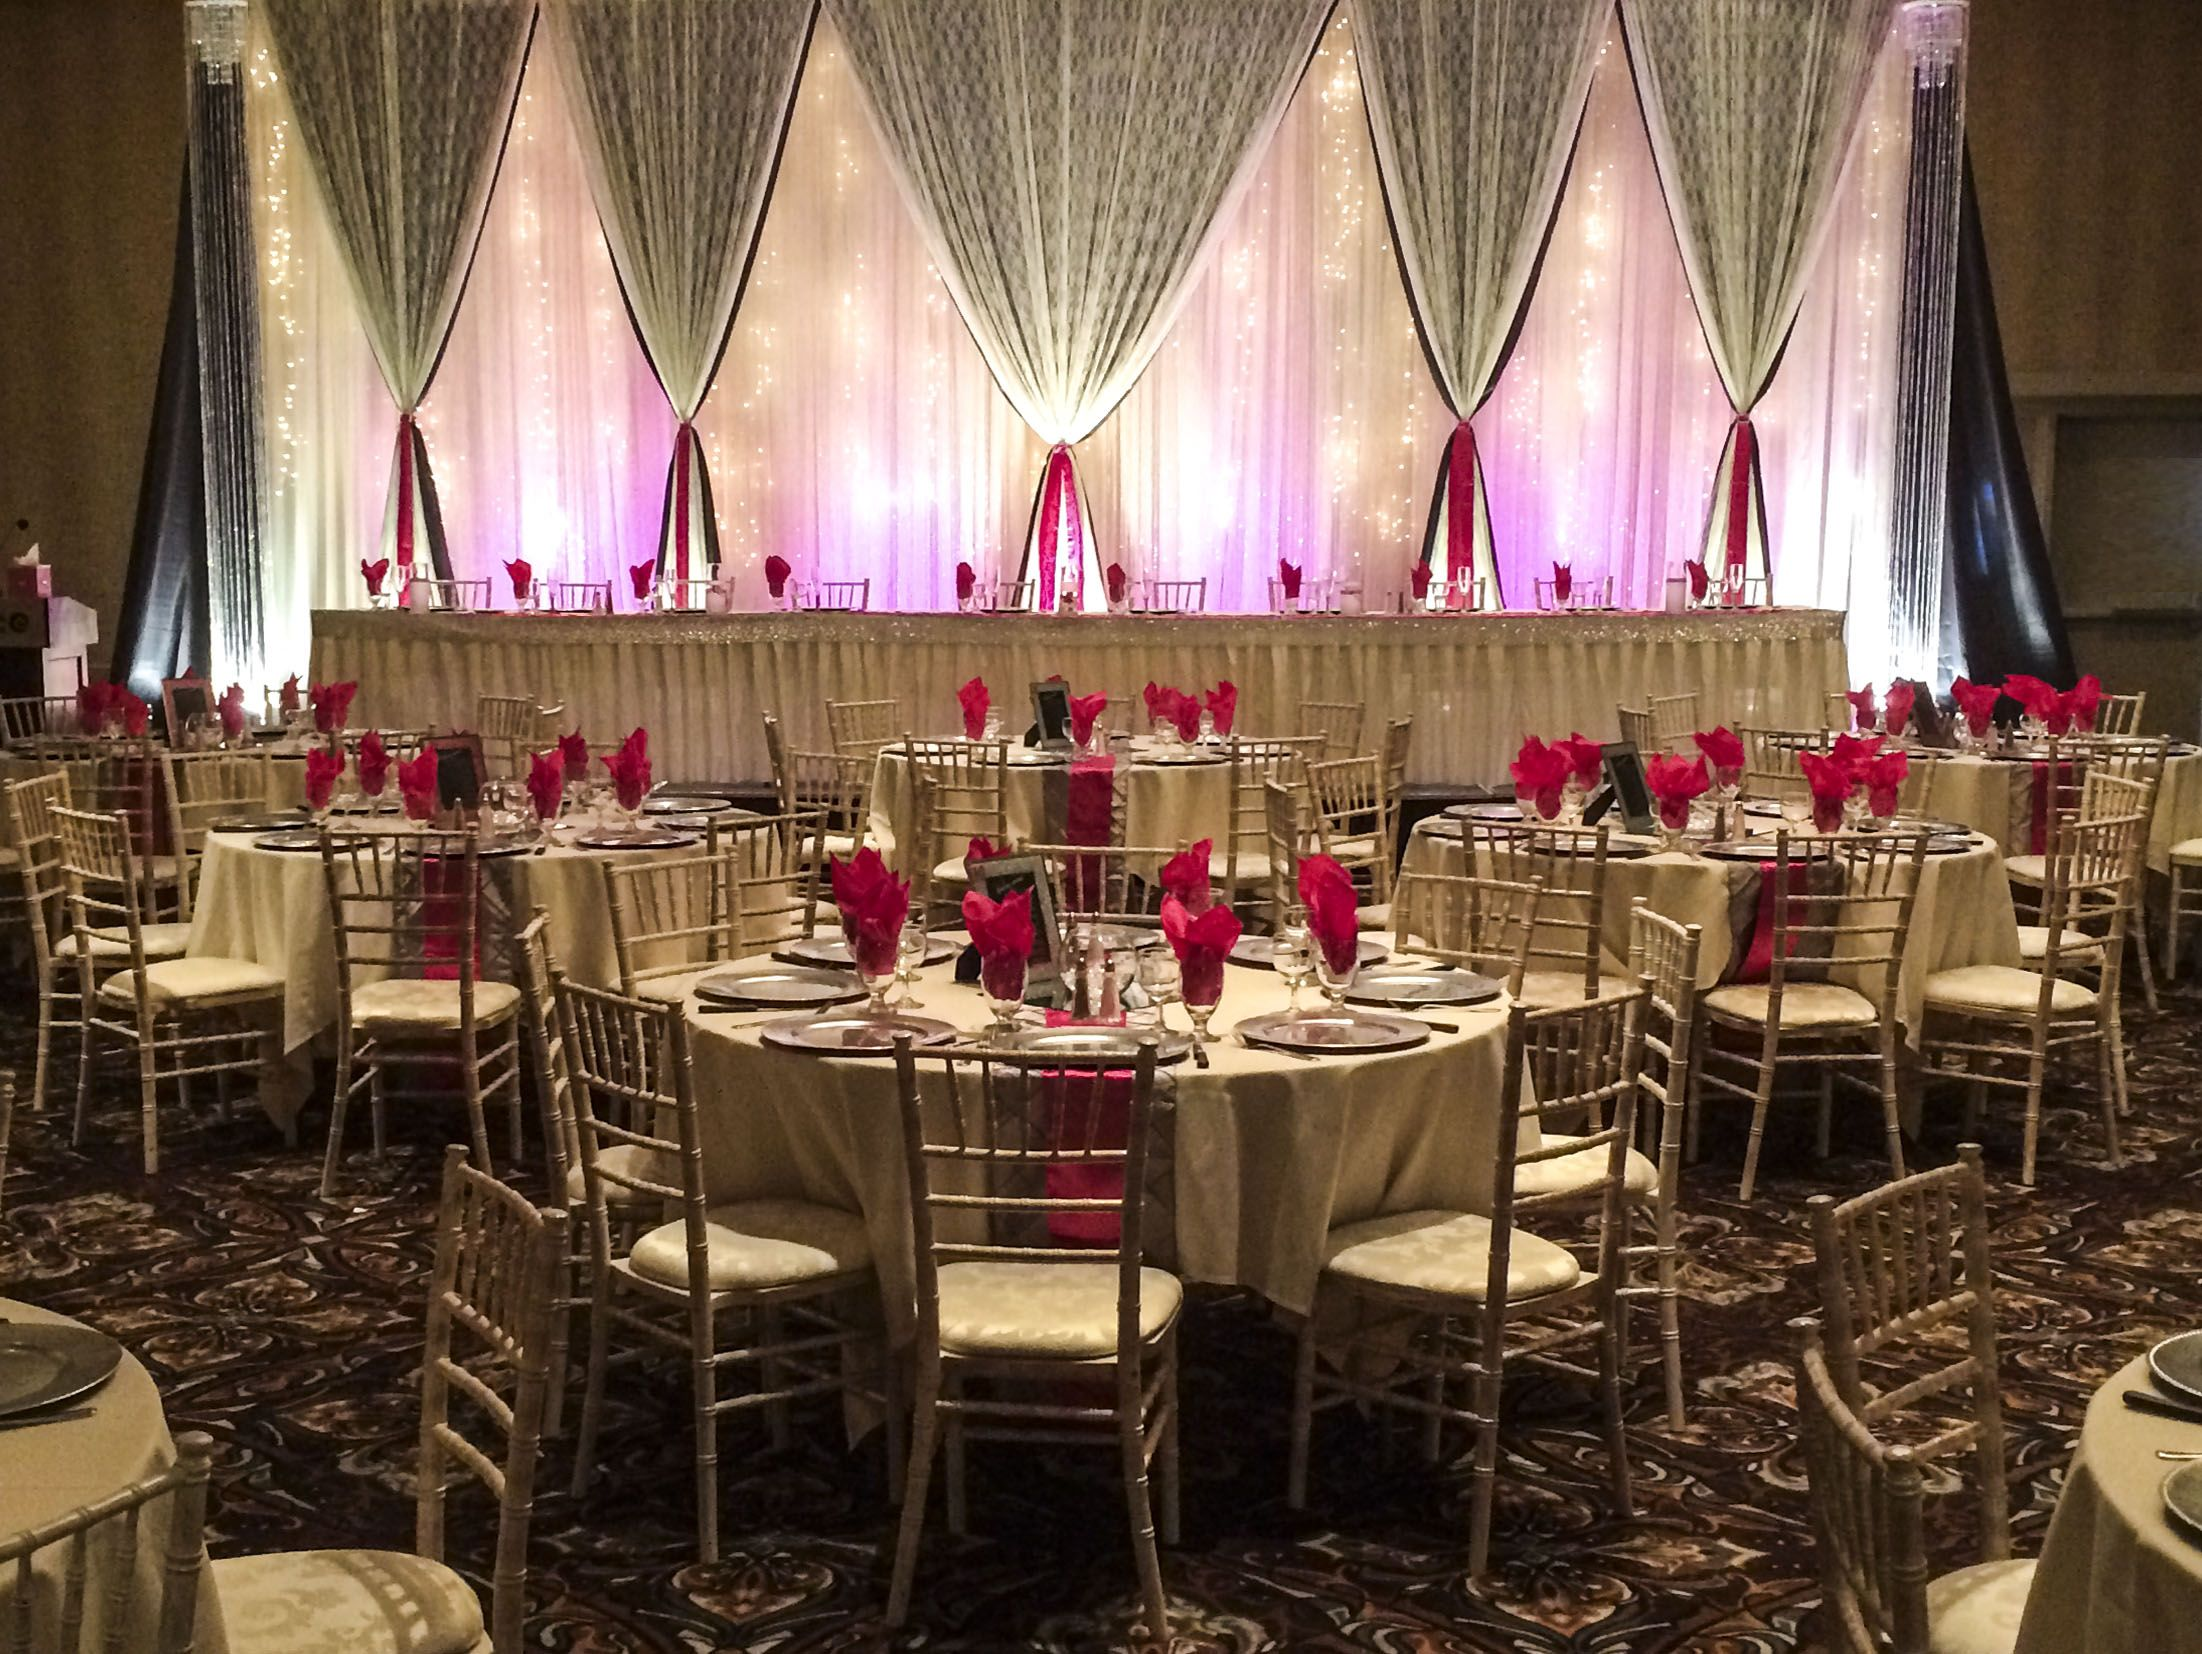 Hot Pink And Silver Wedding Lachefs Lachefsdecor Decor Catering